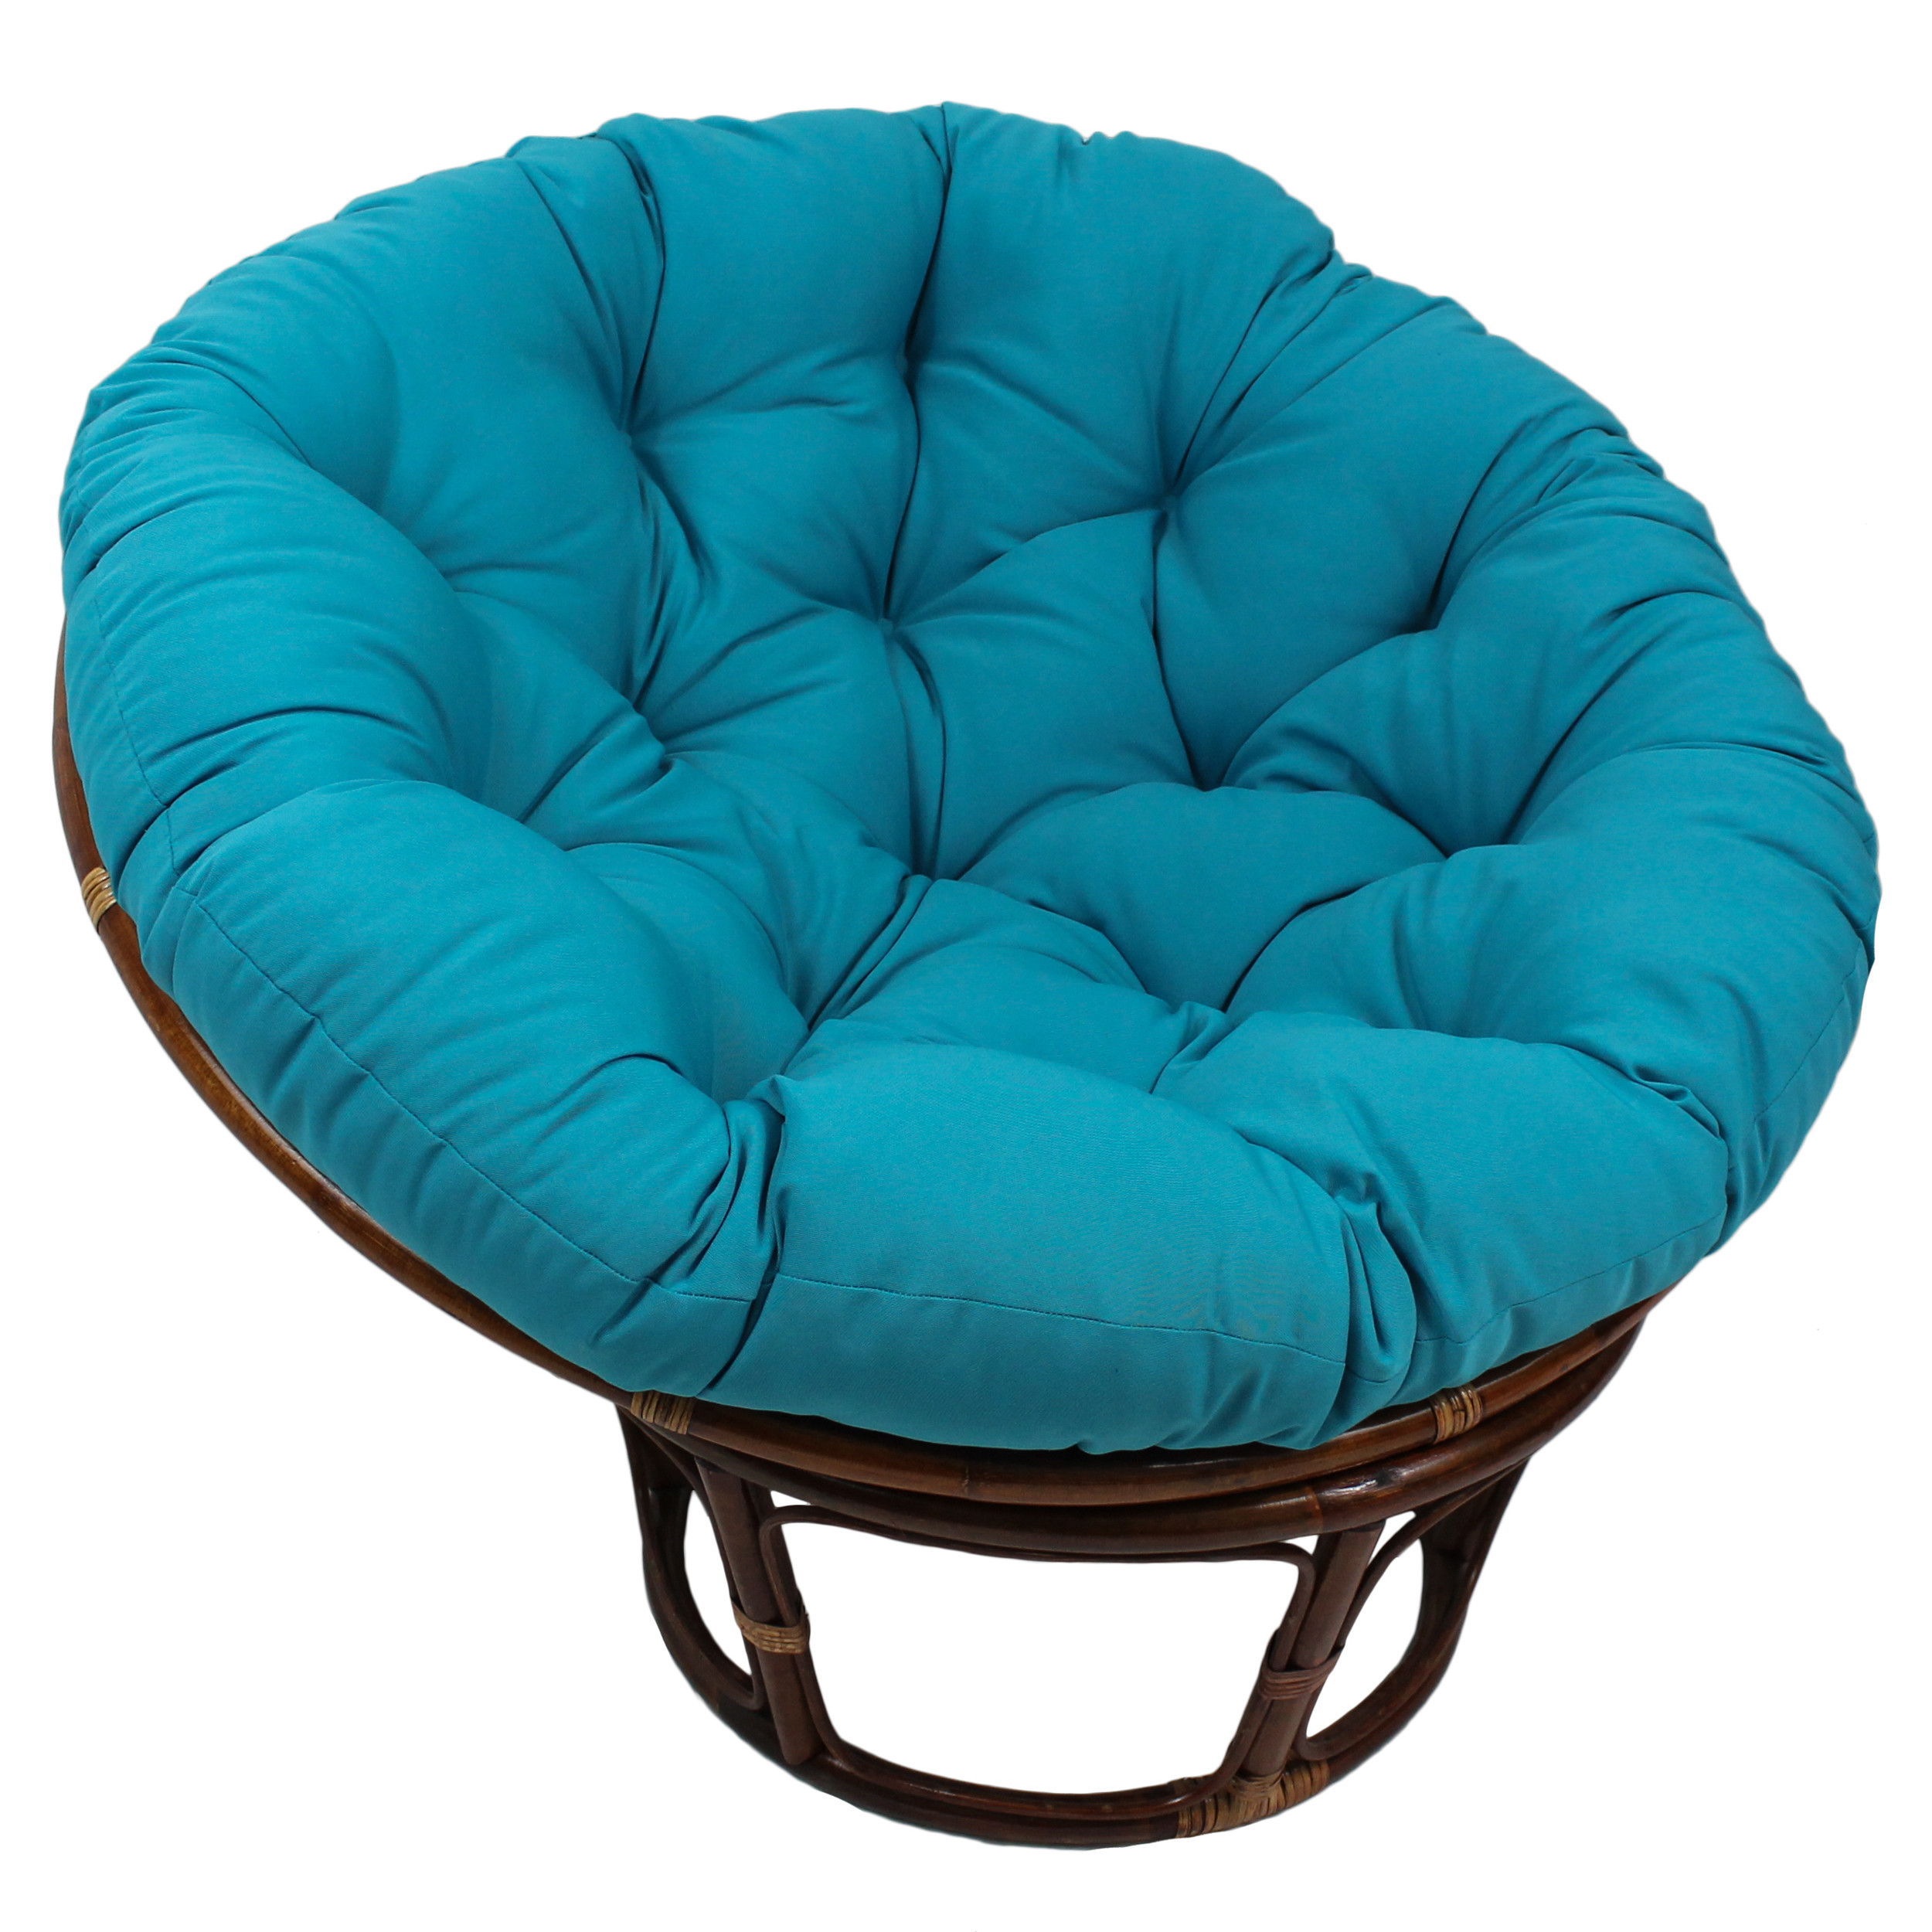 Papasan Cushion | Papazan Chair | Gray Papasan Cushion